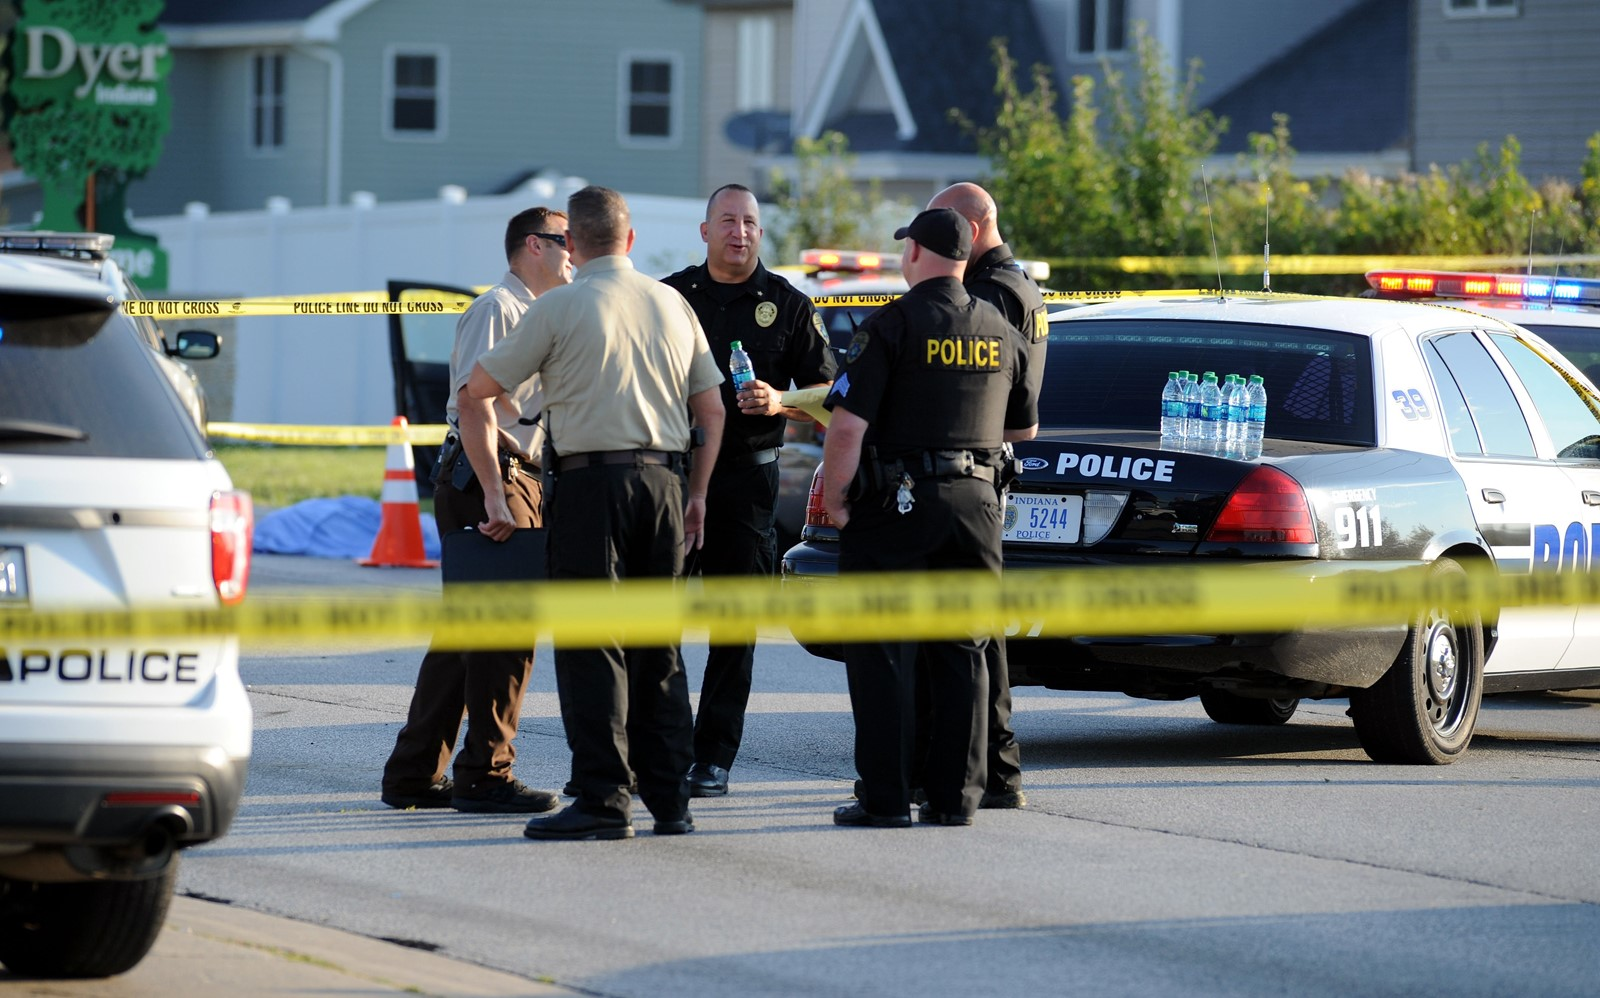 Chase ends in fatal police shooting - South Southwest